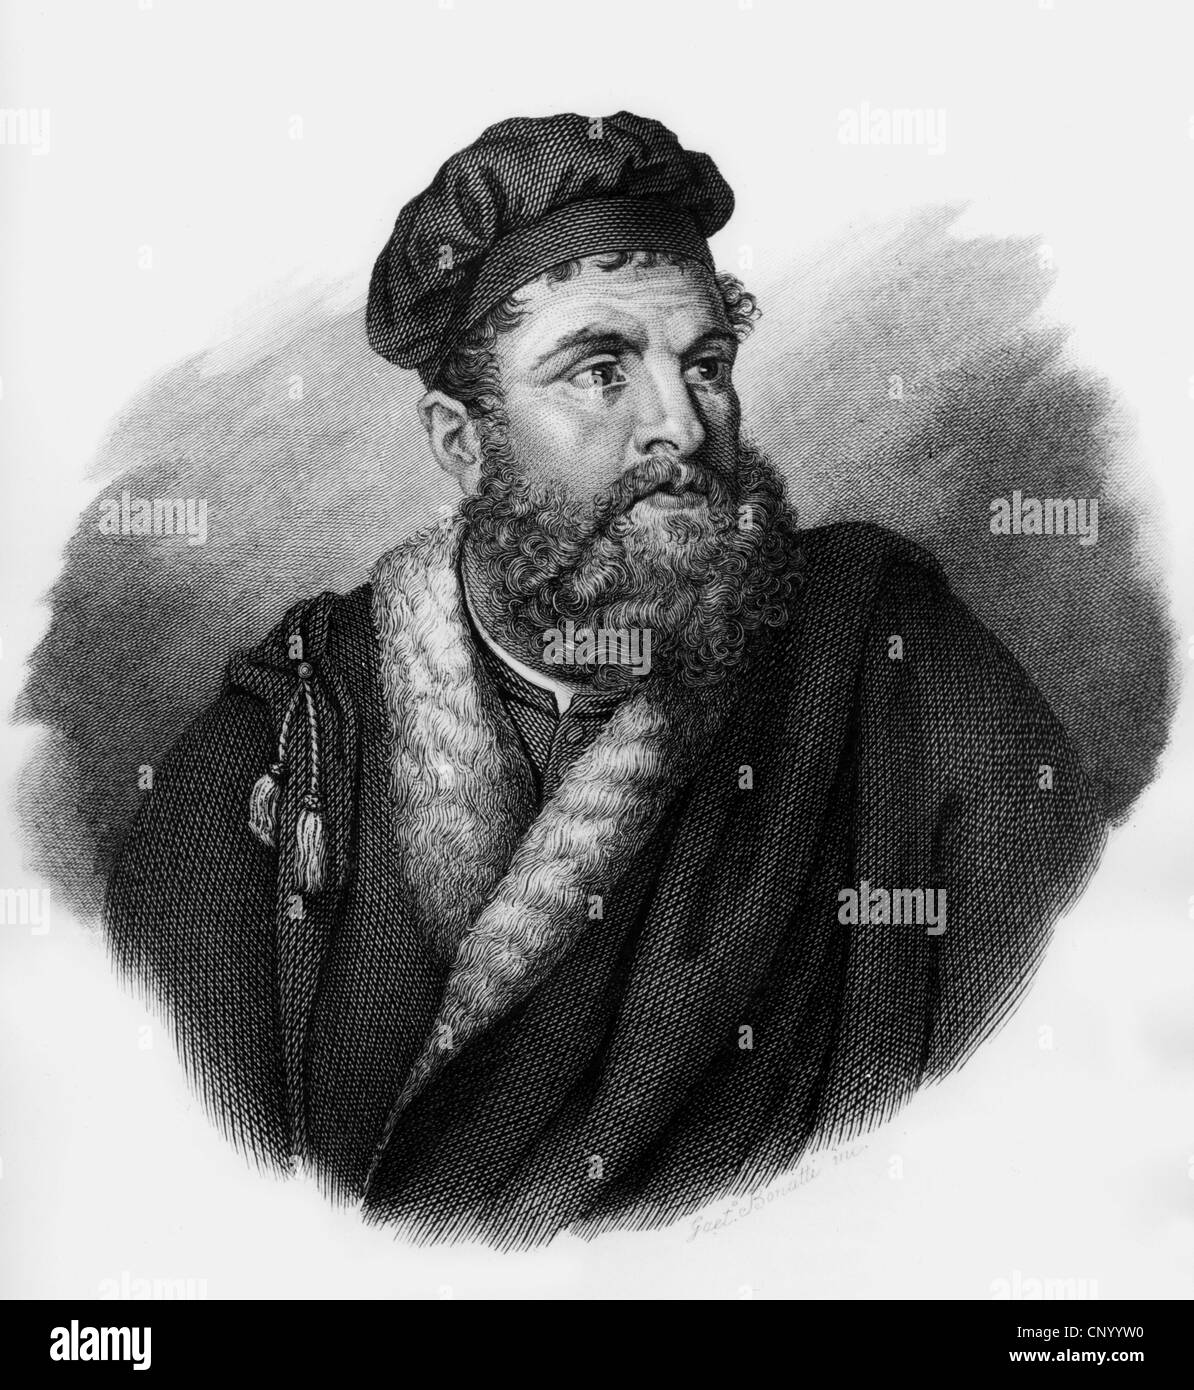 Polo, Marco, 1254 - 8.1.1324, Venetian merchant and traveller, portrait, wood engraving, 19th century, Additional - Stock Image